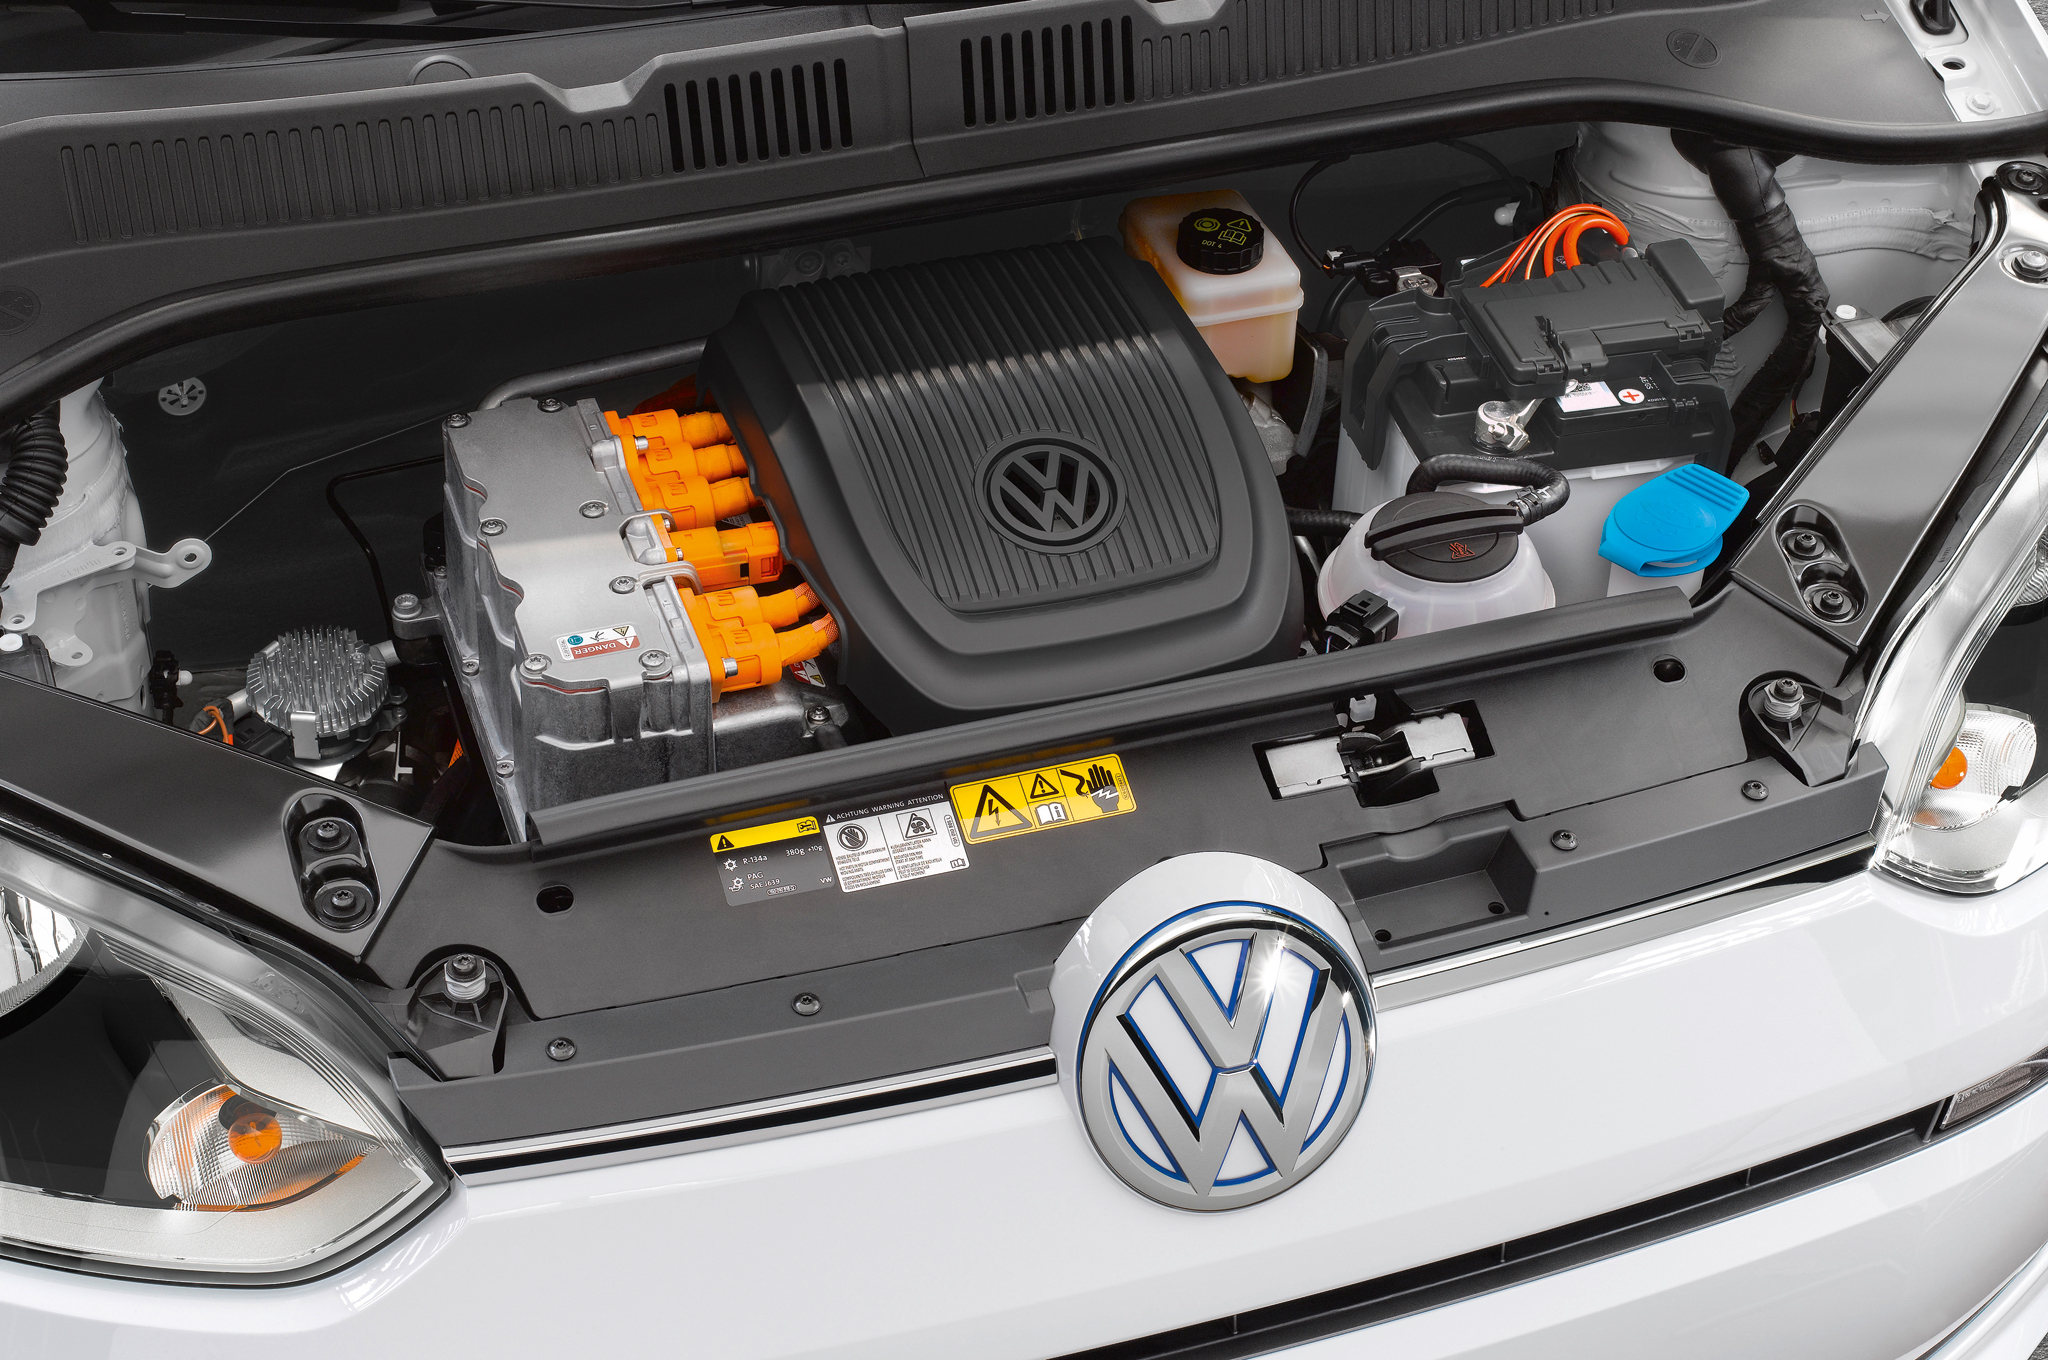 2014 Volkswagen E Up Engine (Photo 1 of 6)